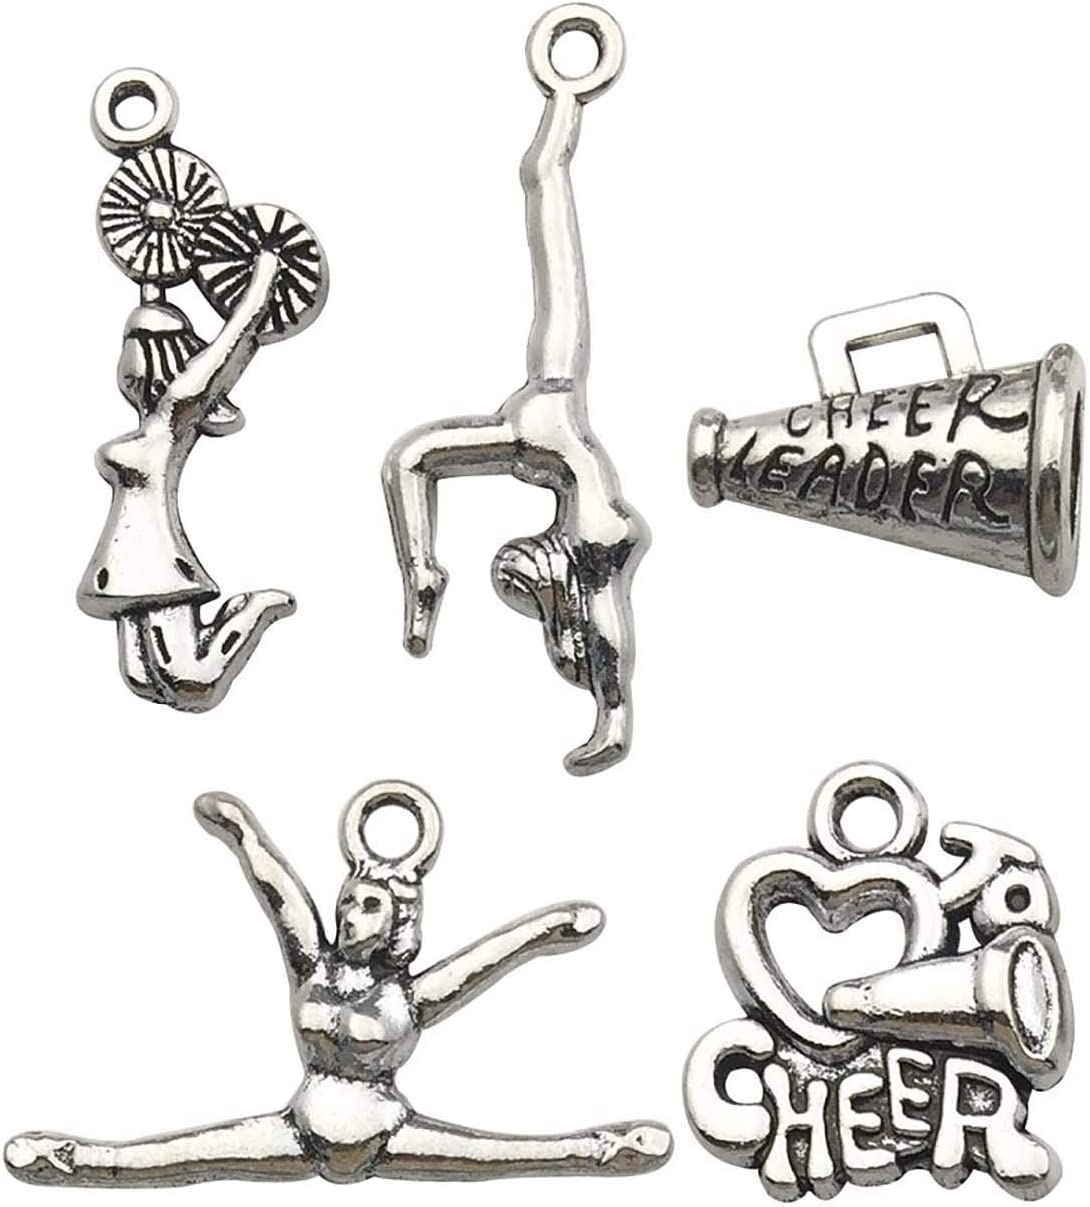 5 STYLES OF ASSORTMENT SILVER SPIRITUAL CHARMS,you choose GREAT FOR DIY CRAFTS